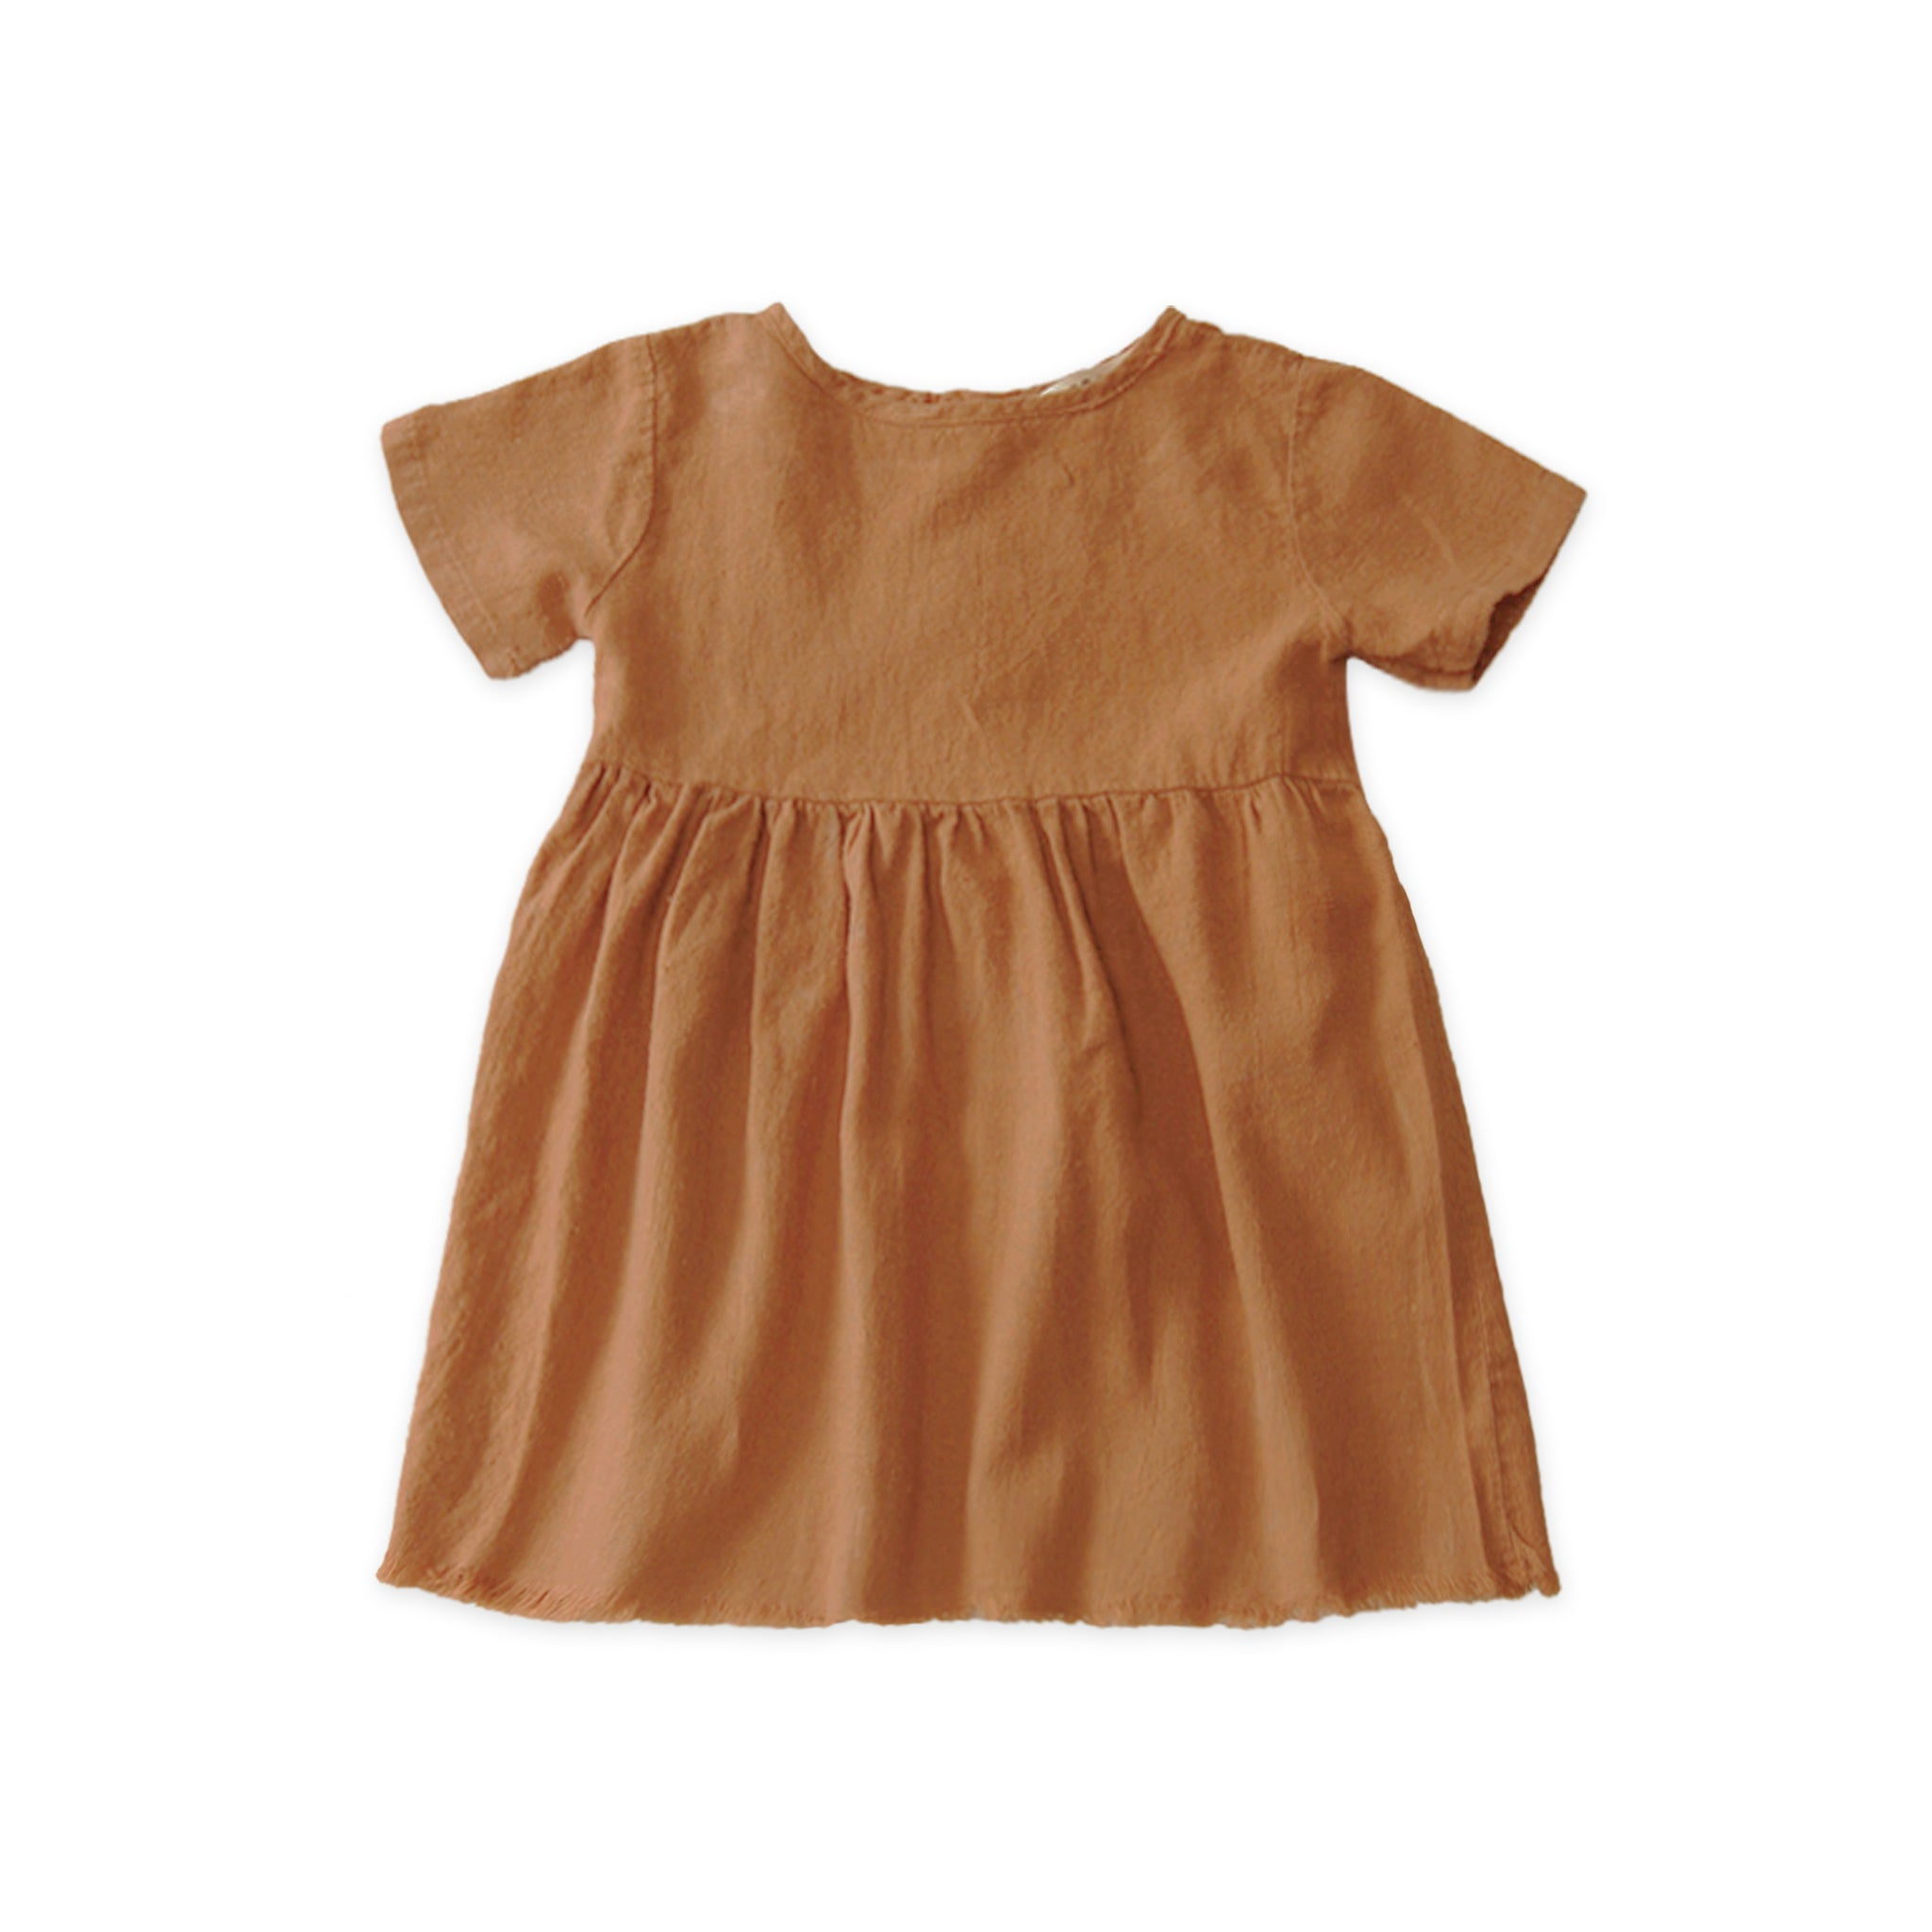 Go Gently Nation Short Sleeve Prairie Baby & Kid's Dress Adobe | Organic cotton and hemp | BIEN BIEN www.bienbienshop.com